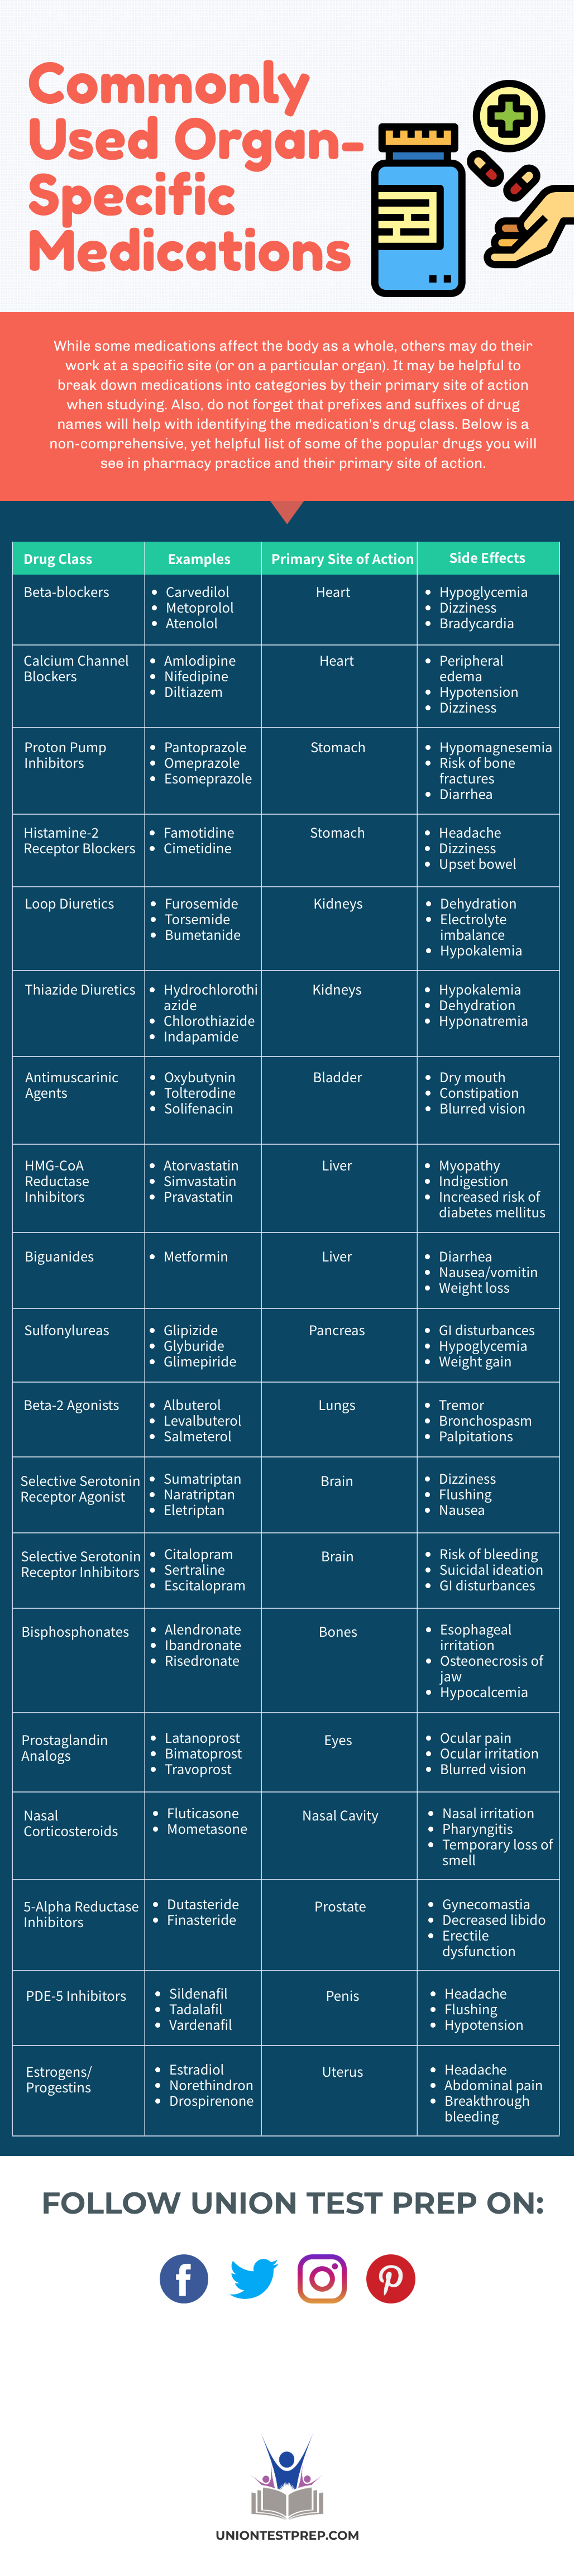 Commonly Used Organ-Specific Medications